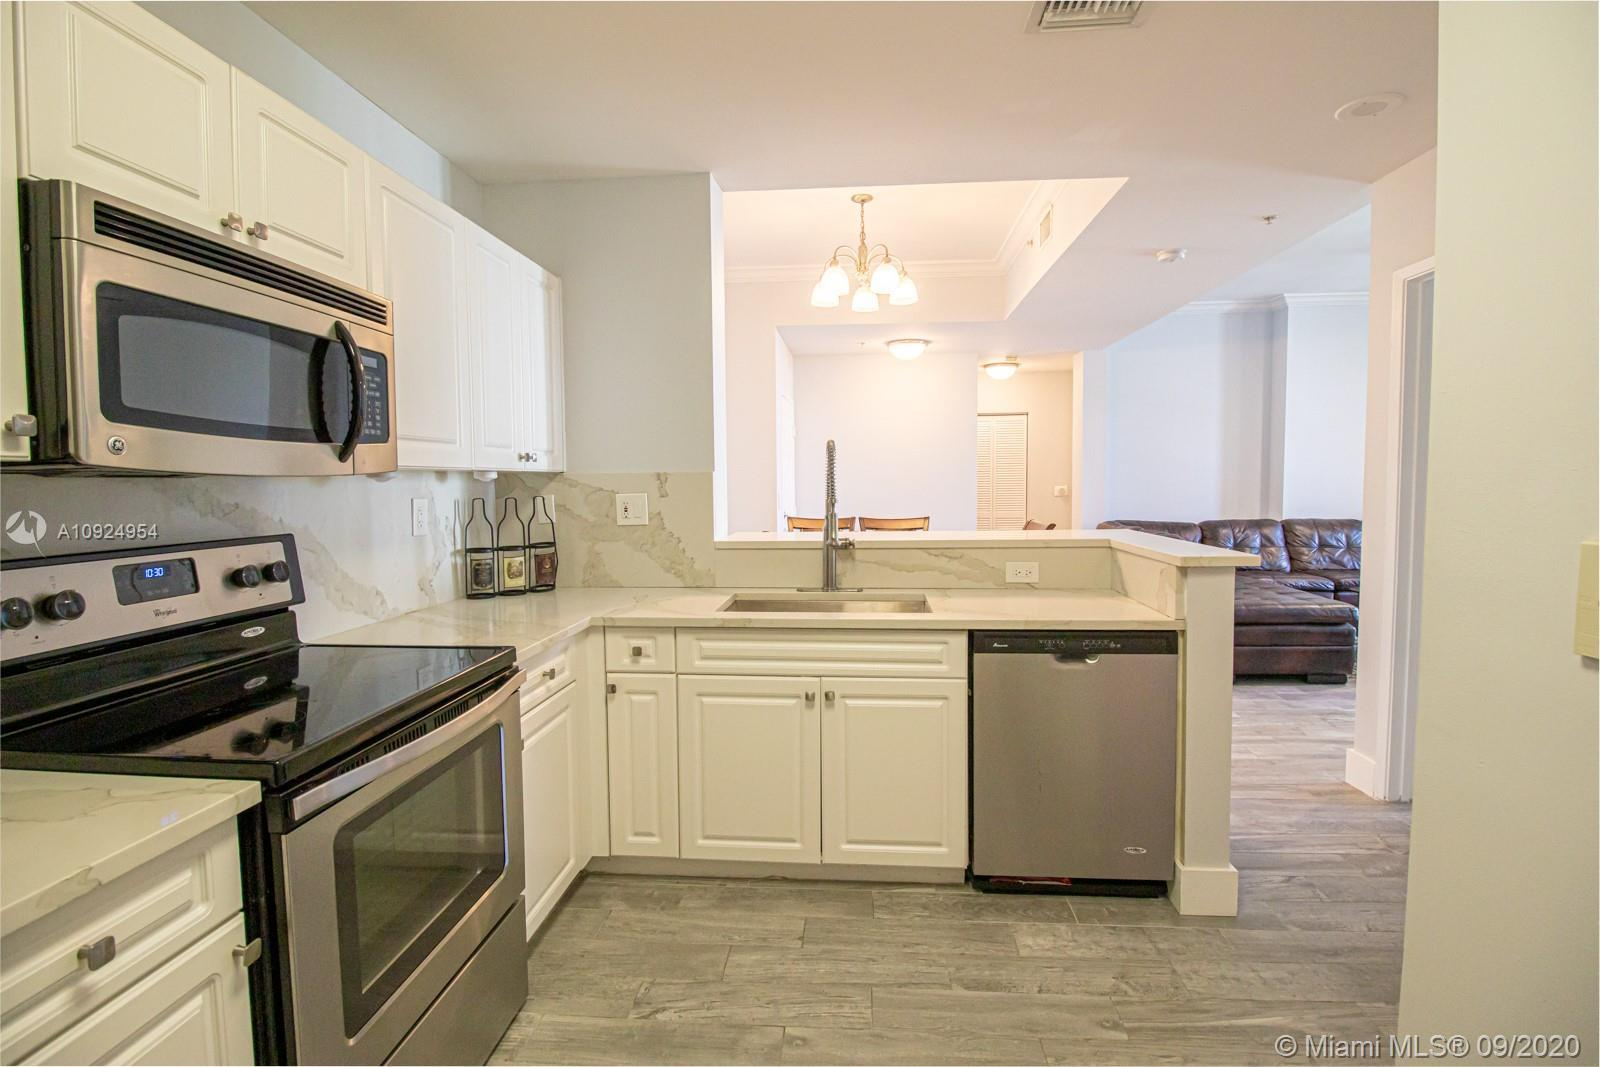 Completely remodeled Penthouse  - Best bang for your buck right off Las Olas!  - lots of natural lig